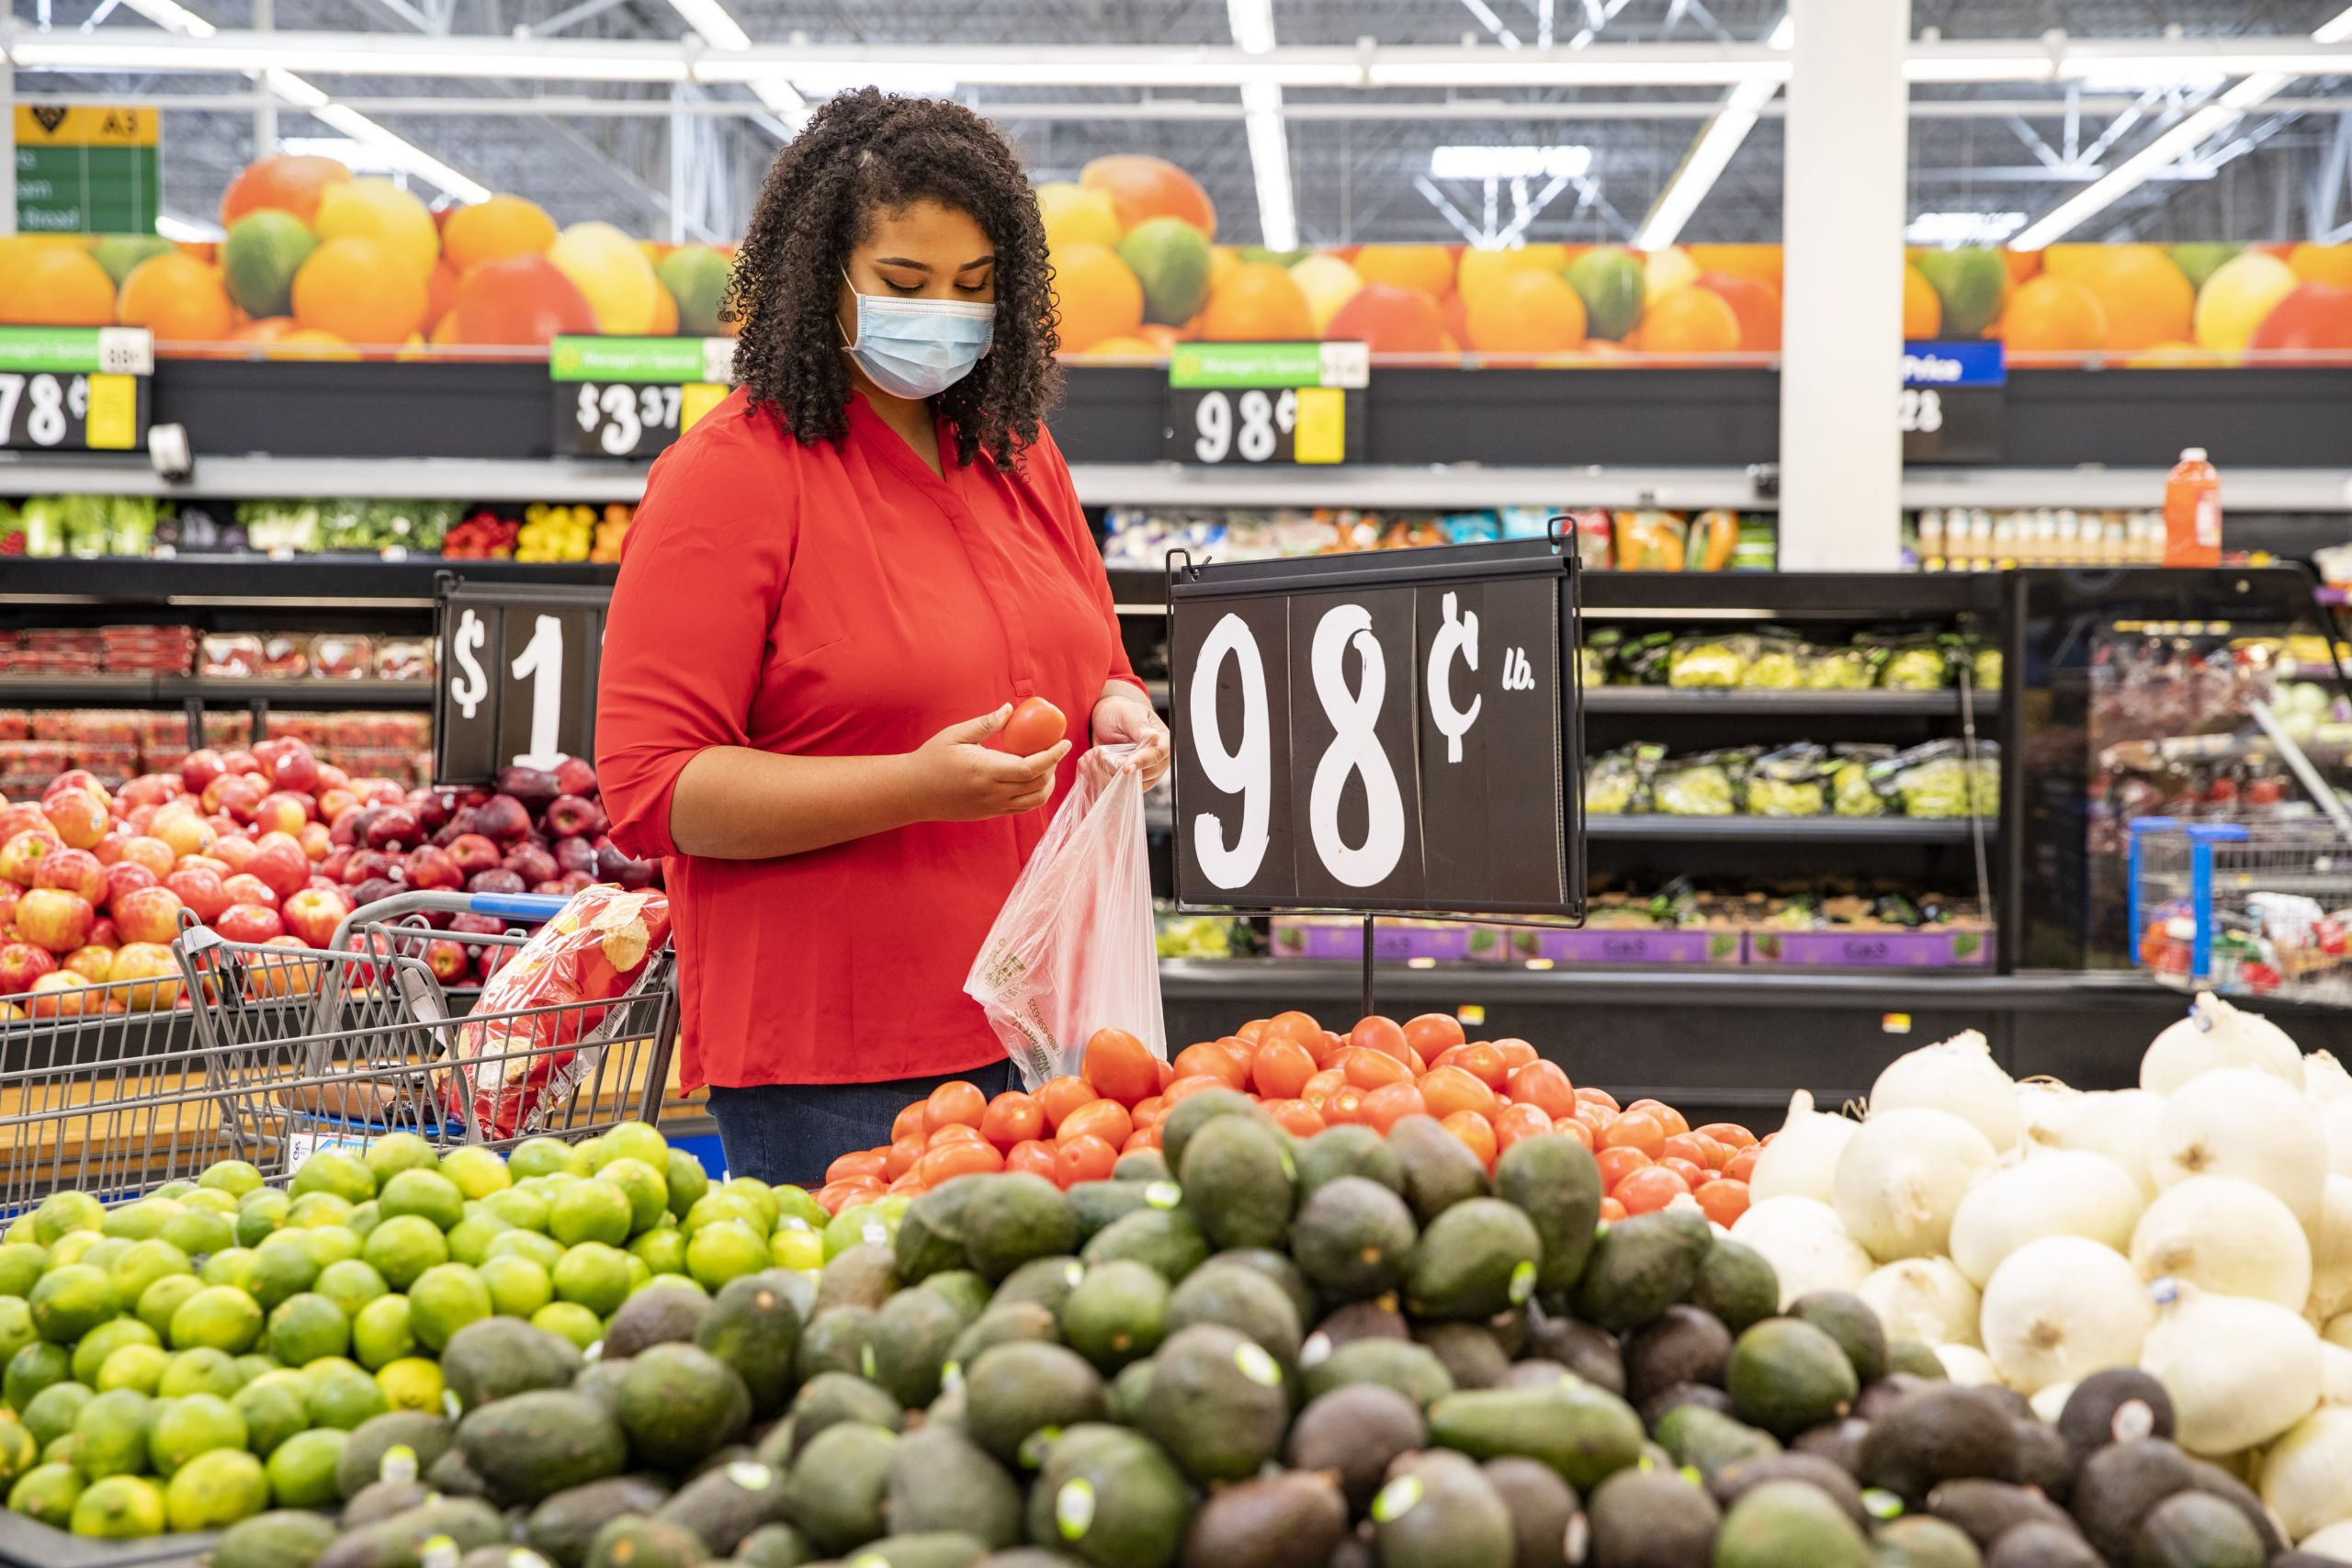 Walmart will require Face Coverings for shoppers, same for Sam's Club.